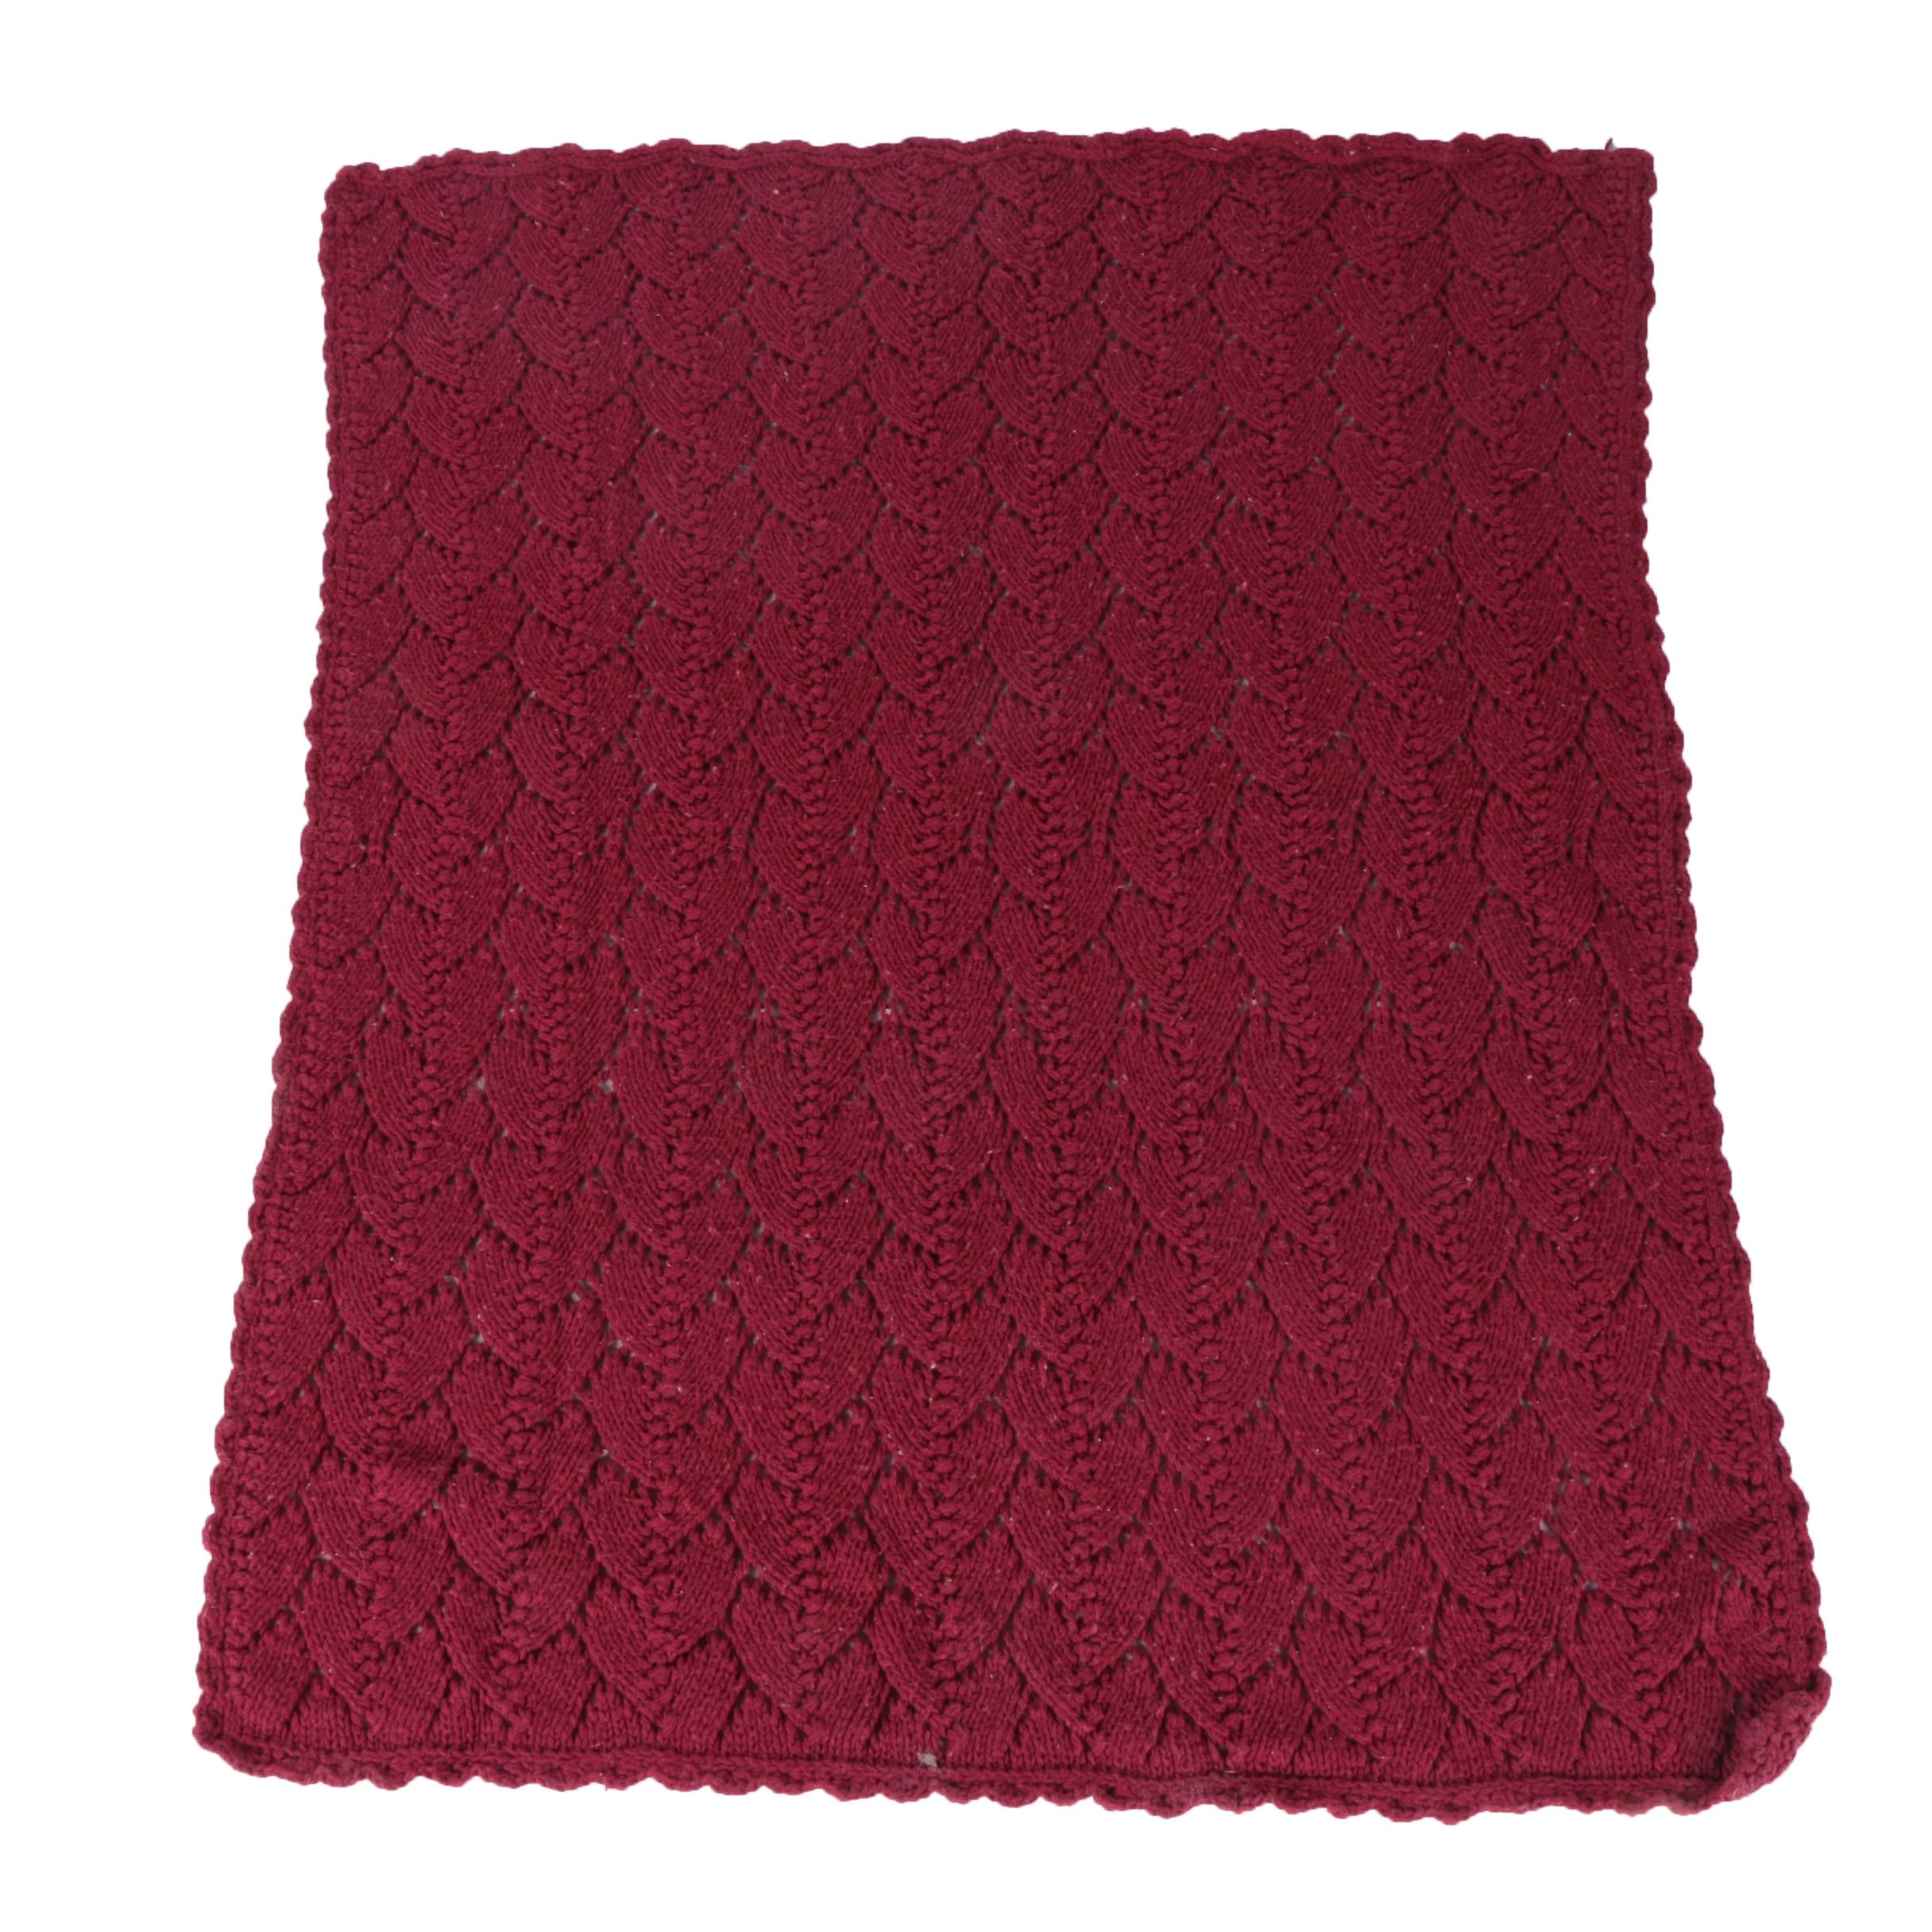 Burgundy Knitted Afghan